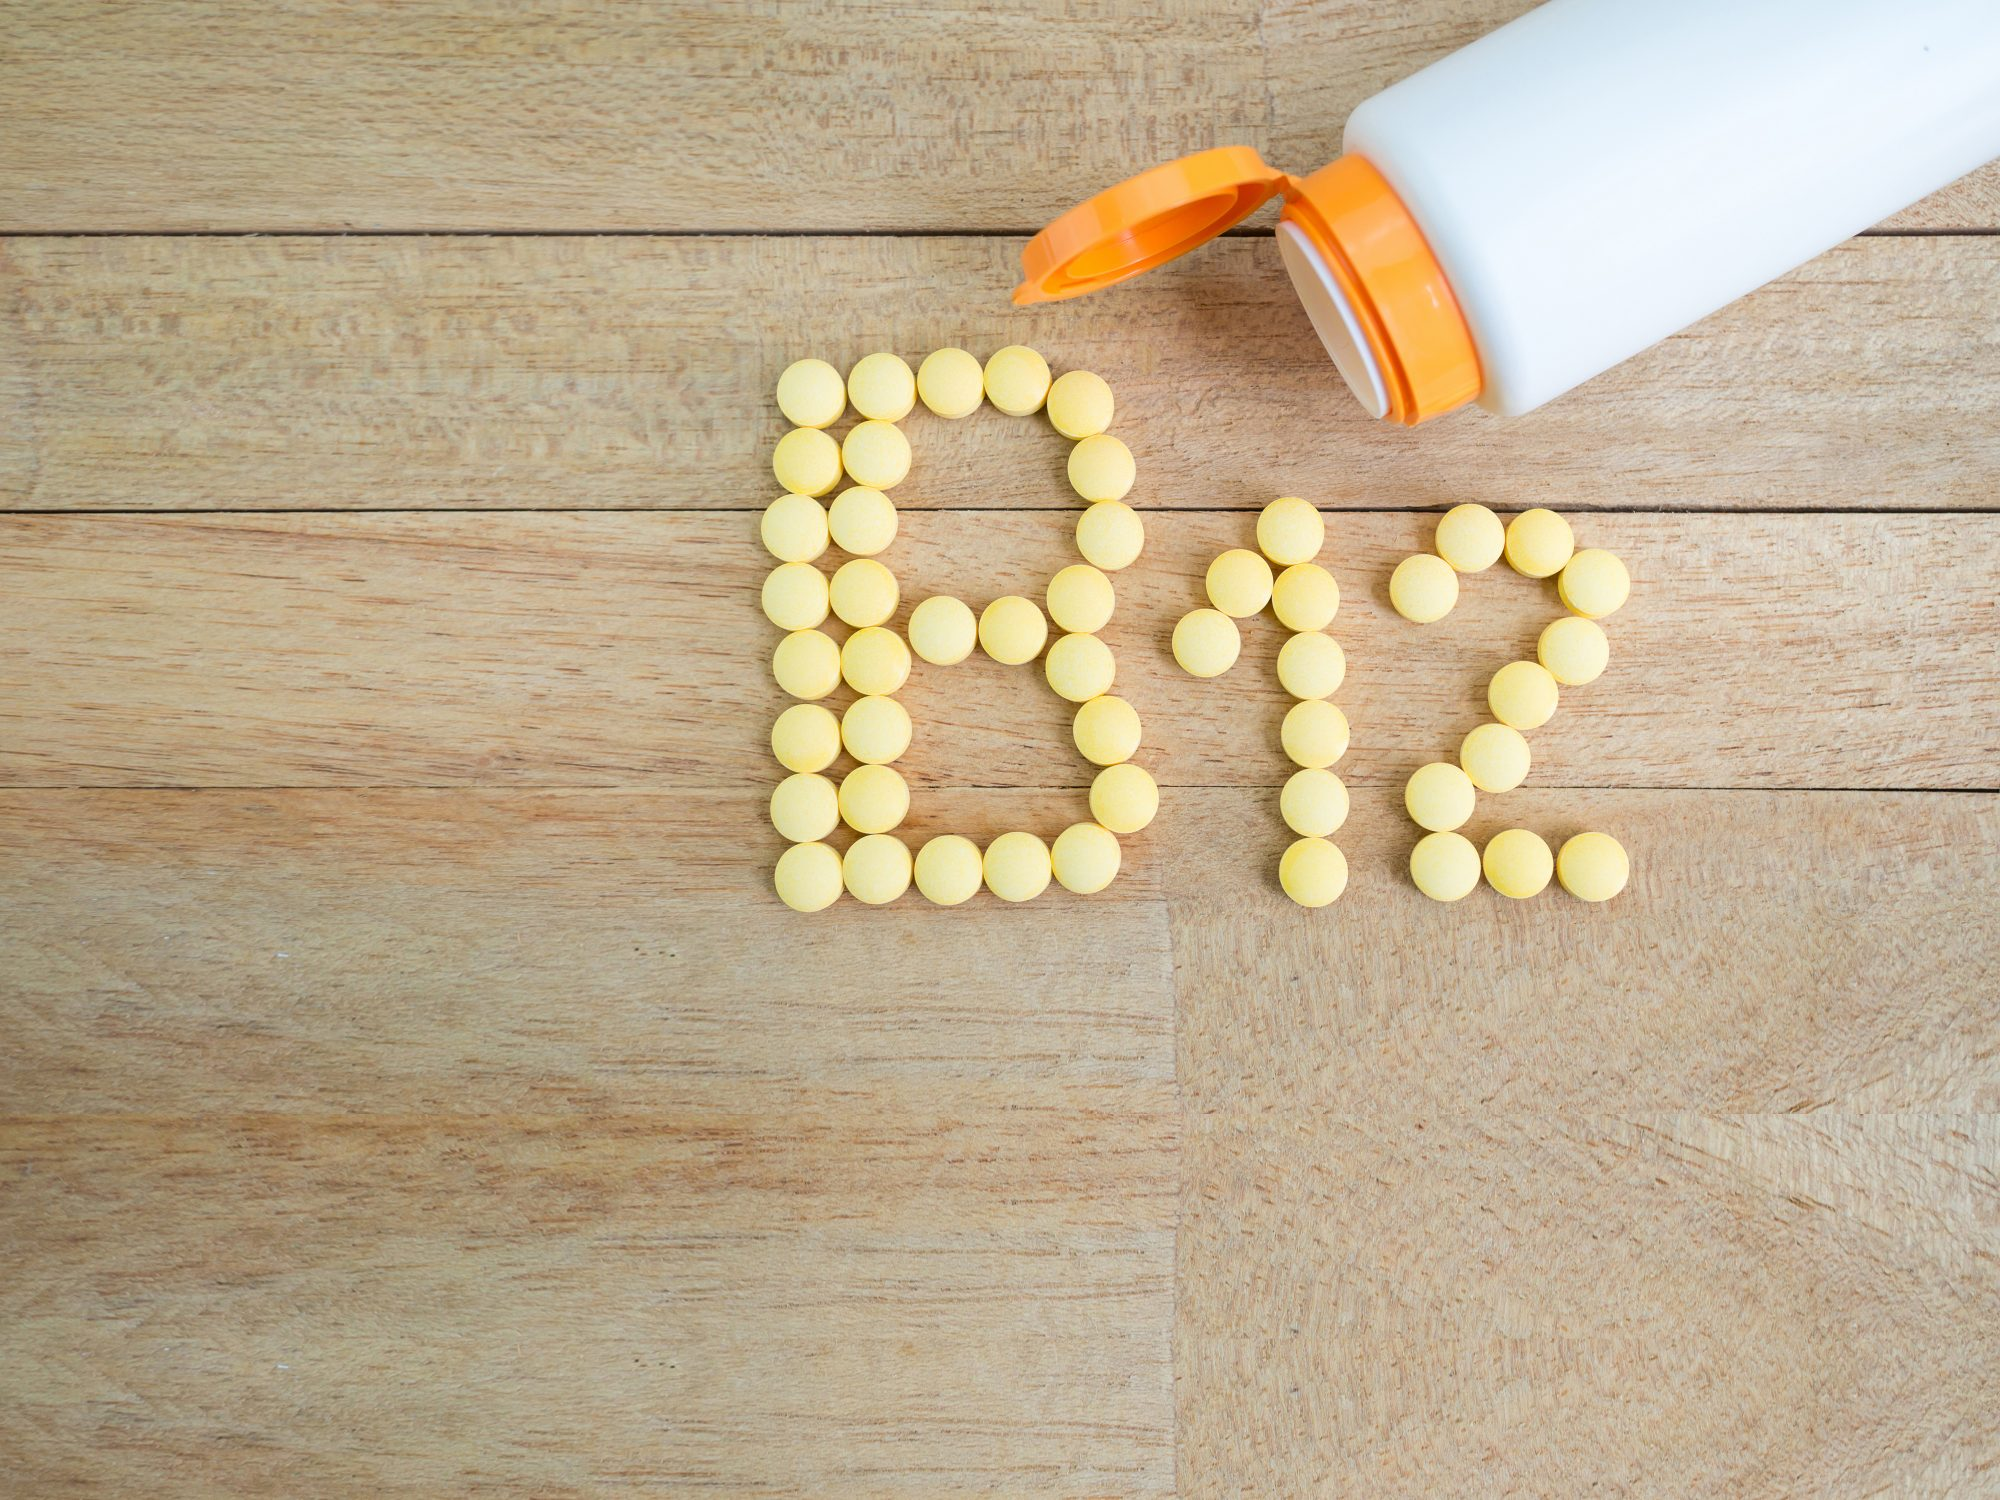 Make sure you're getting the B12 you need